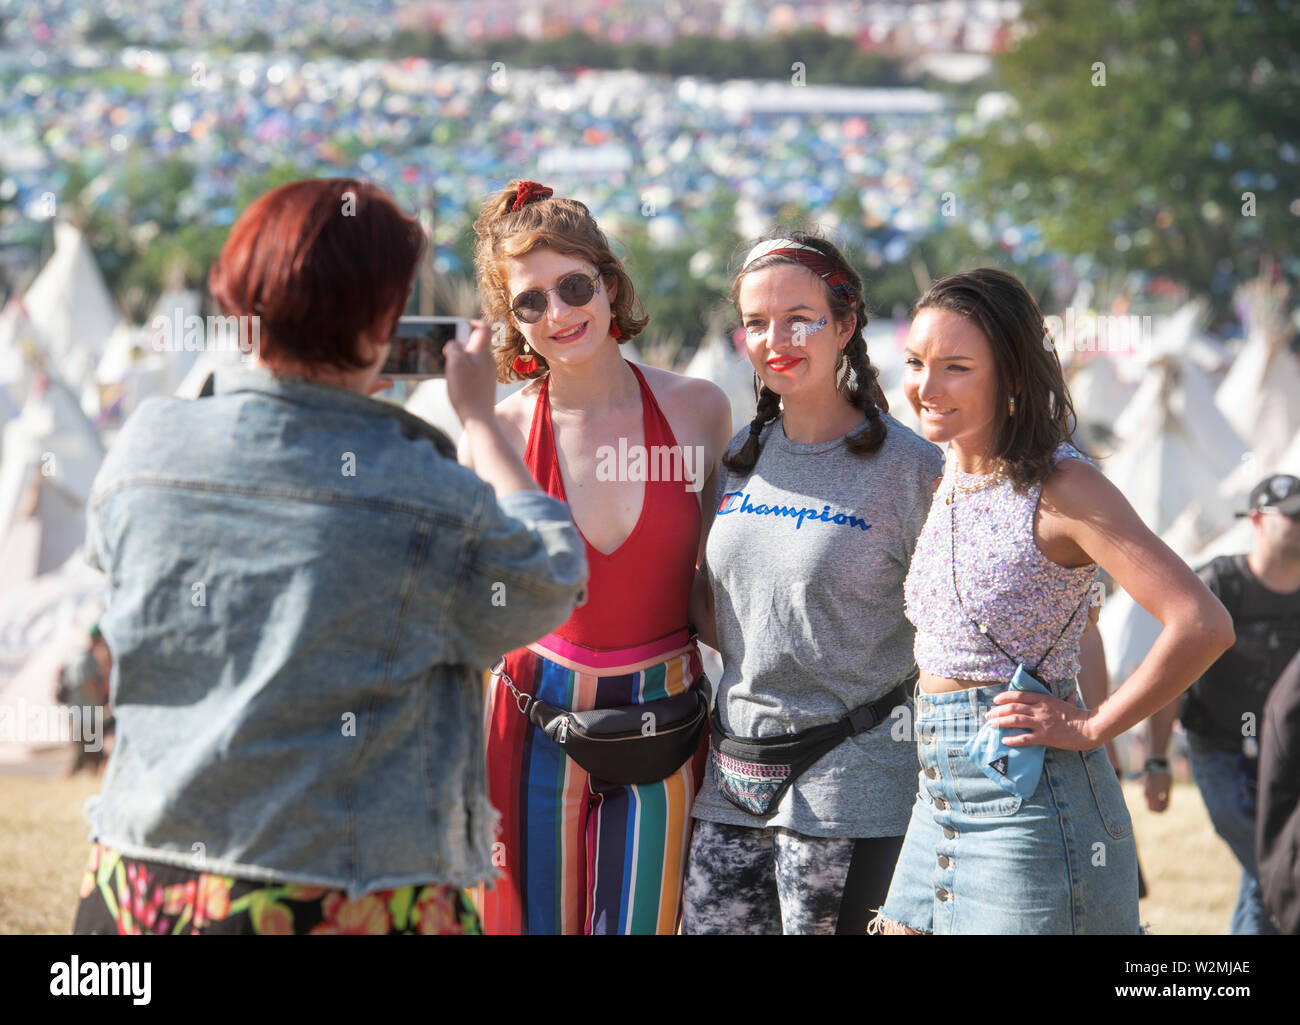 Festival-goers pose for a picture above the Tipi Village at Glastonbury 2019 - Stock Image